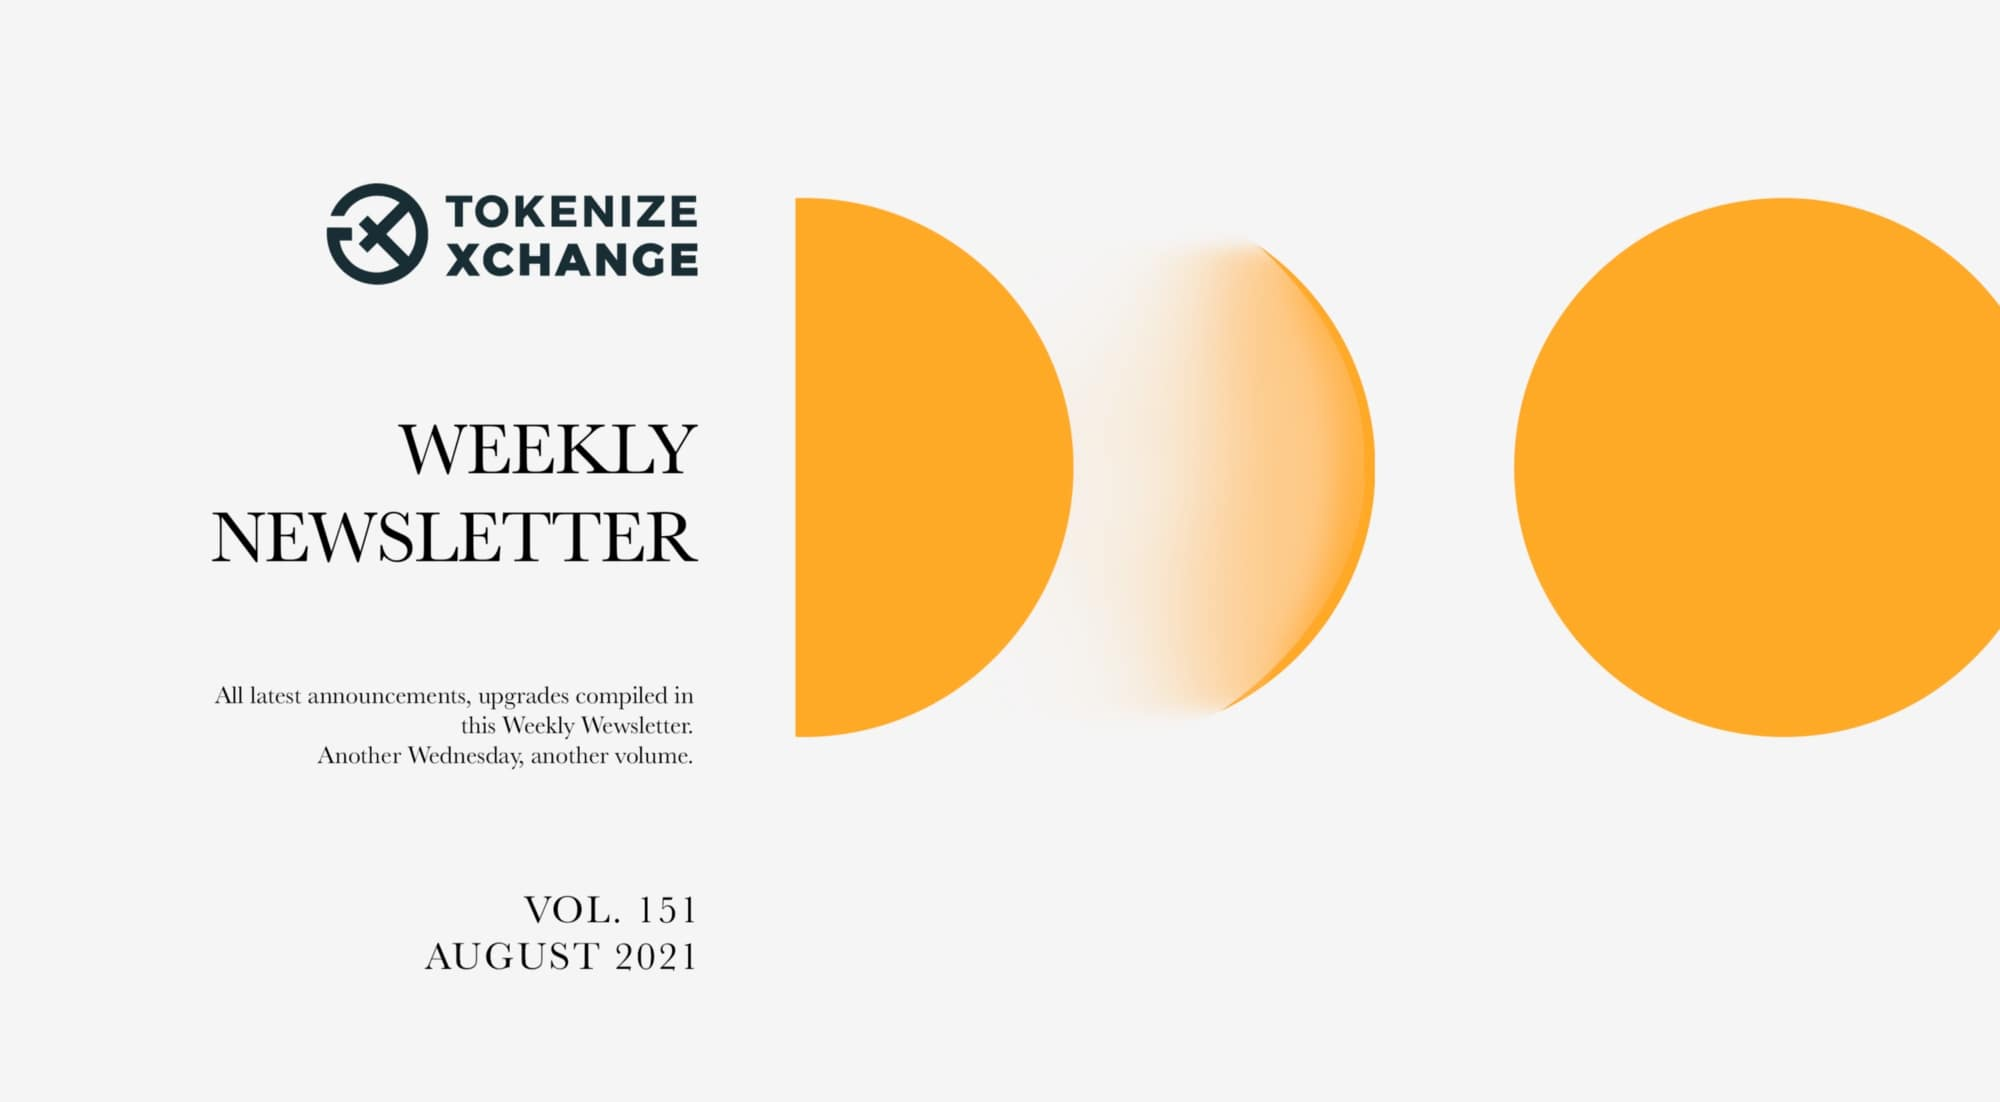 The Newsletter by Tokenize Xchange (Vol.151| Aug 2021)